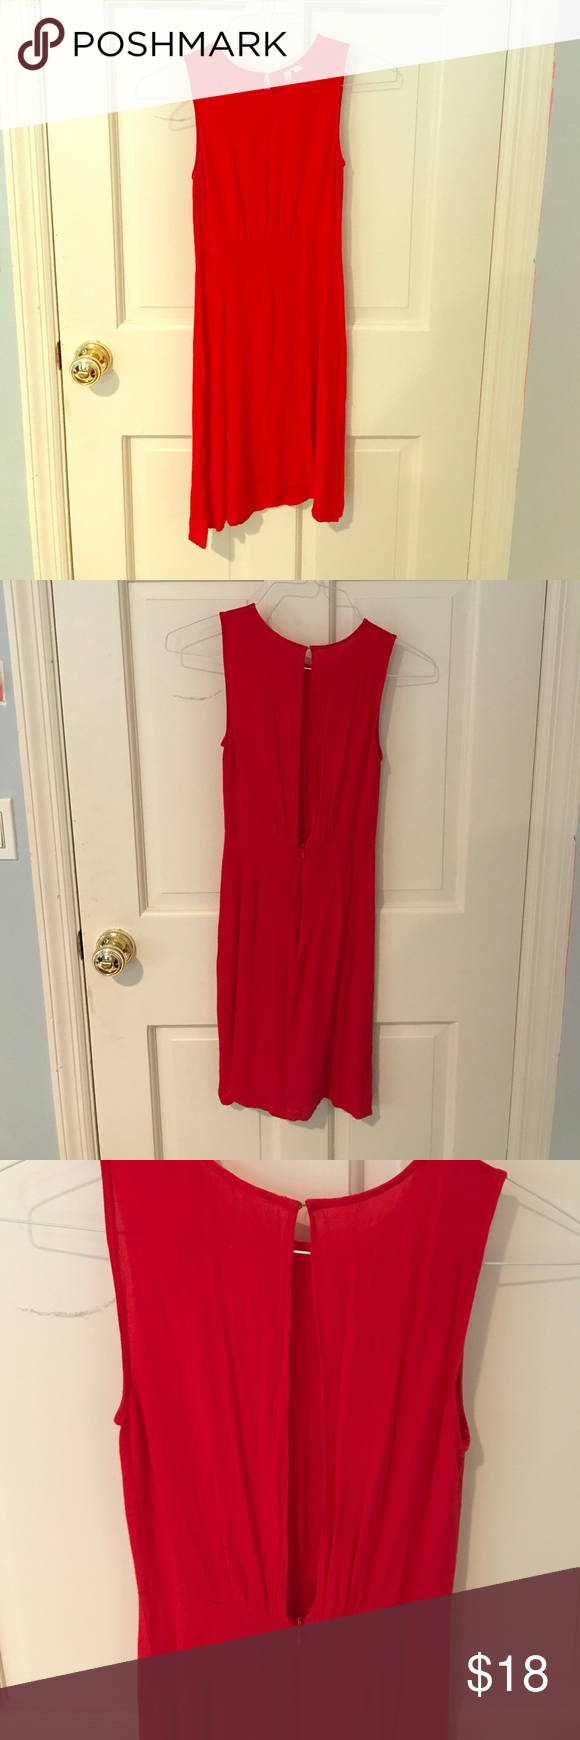 Urban Outfitters Sundress 100% rayon. Cute peep hold back, as pictured. Barely worn, very good condition. Urban Outfitters Dresses Midi